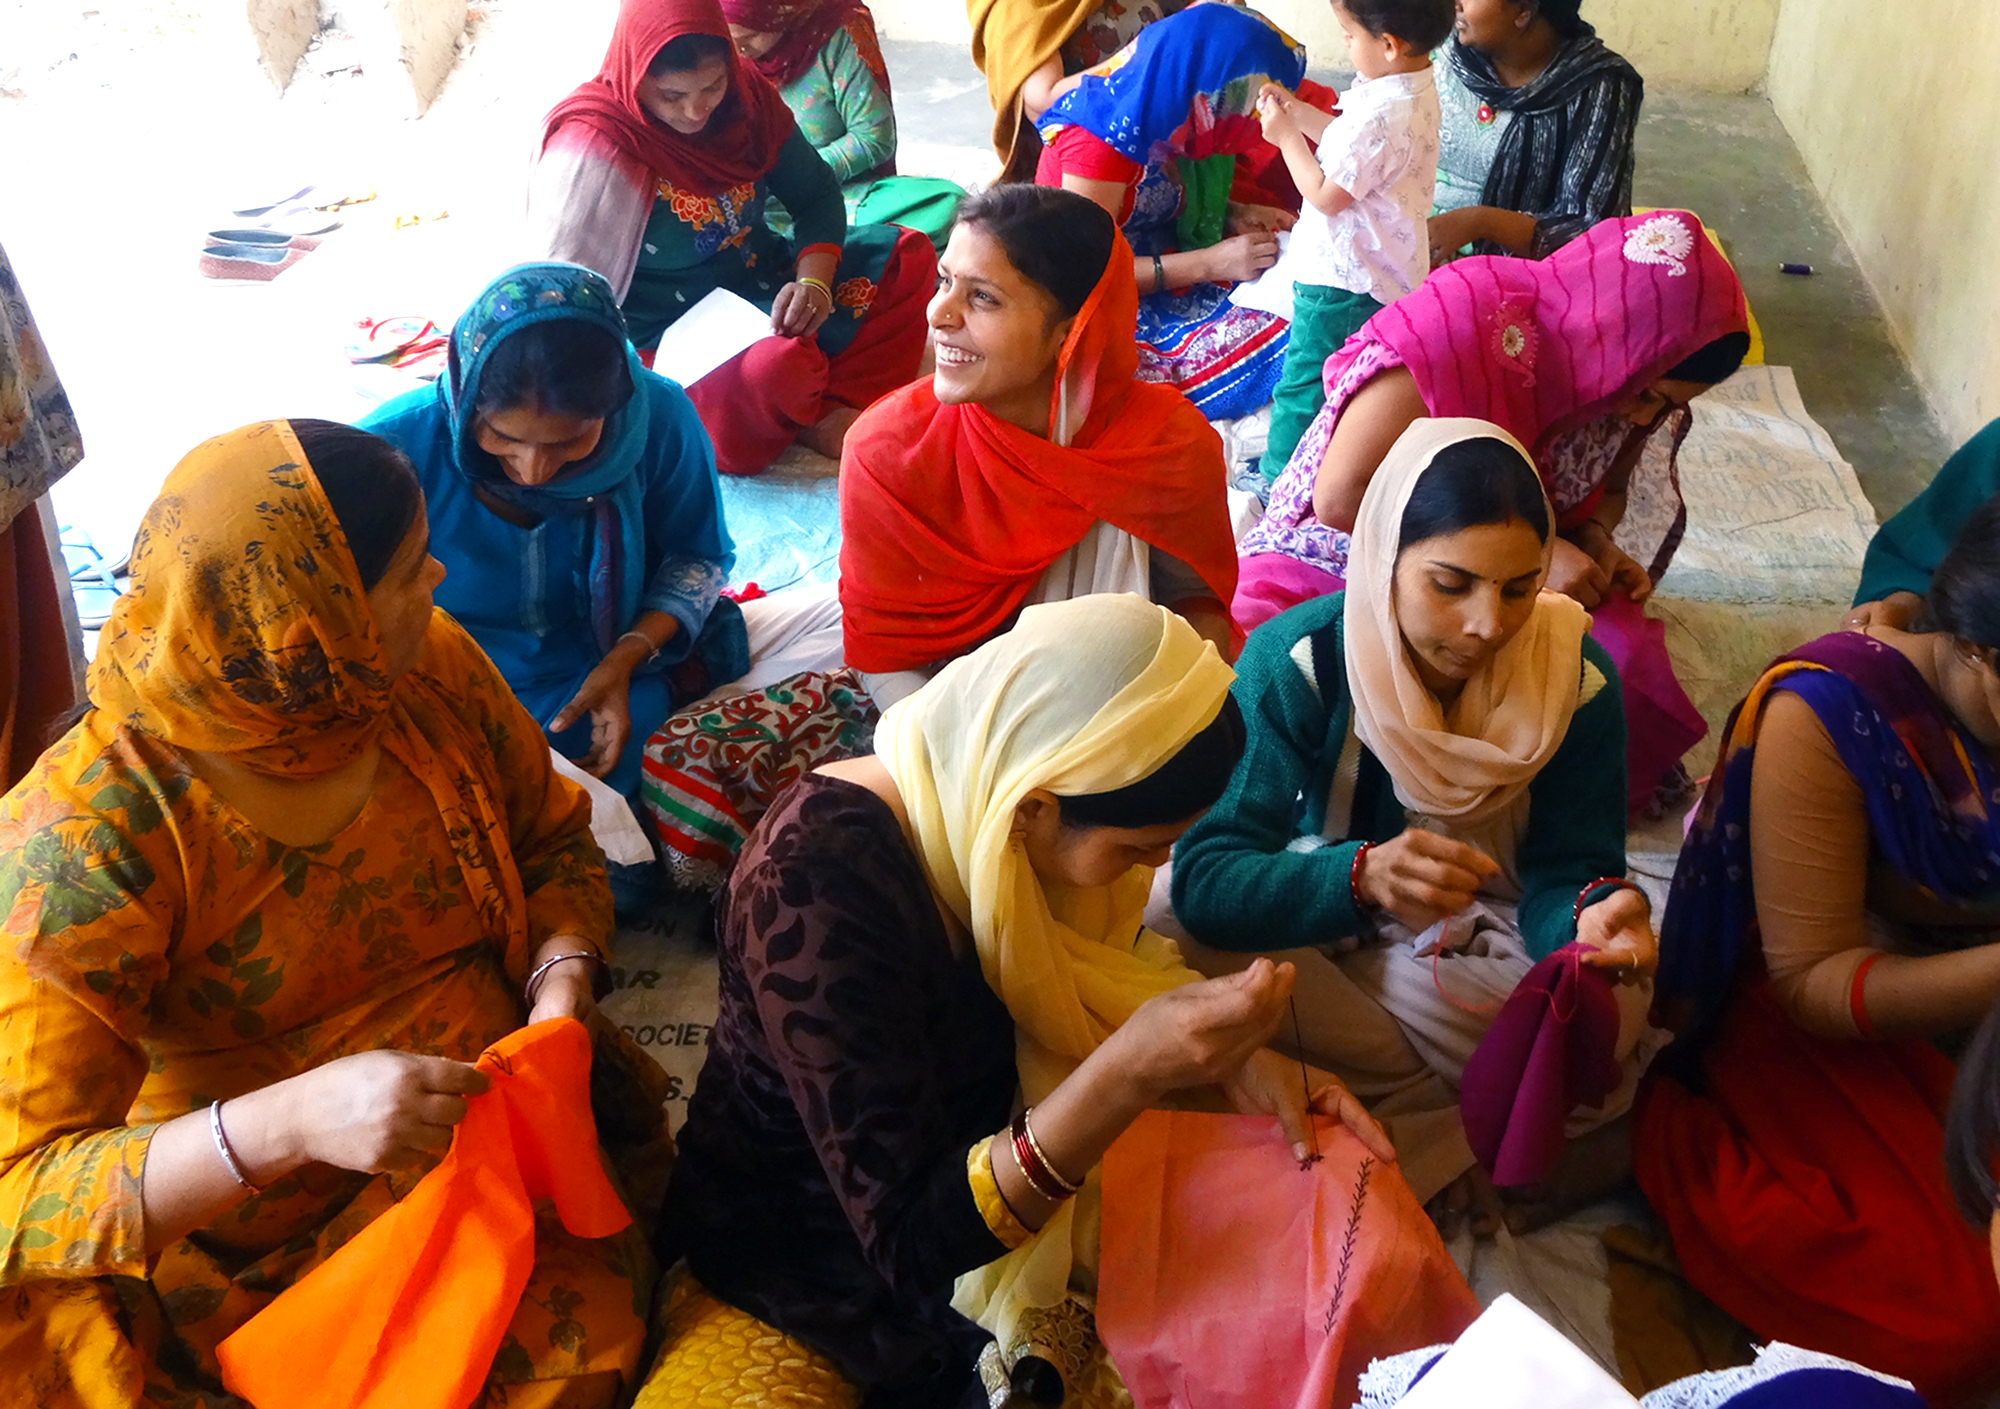 Kamalini in Delhi and Haryana region giving basic education, vocational training and work placements